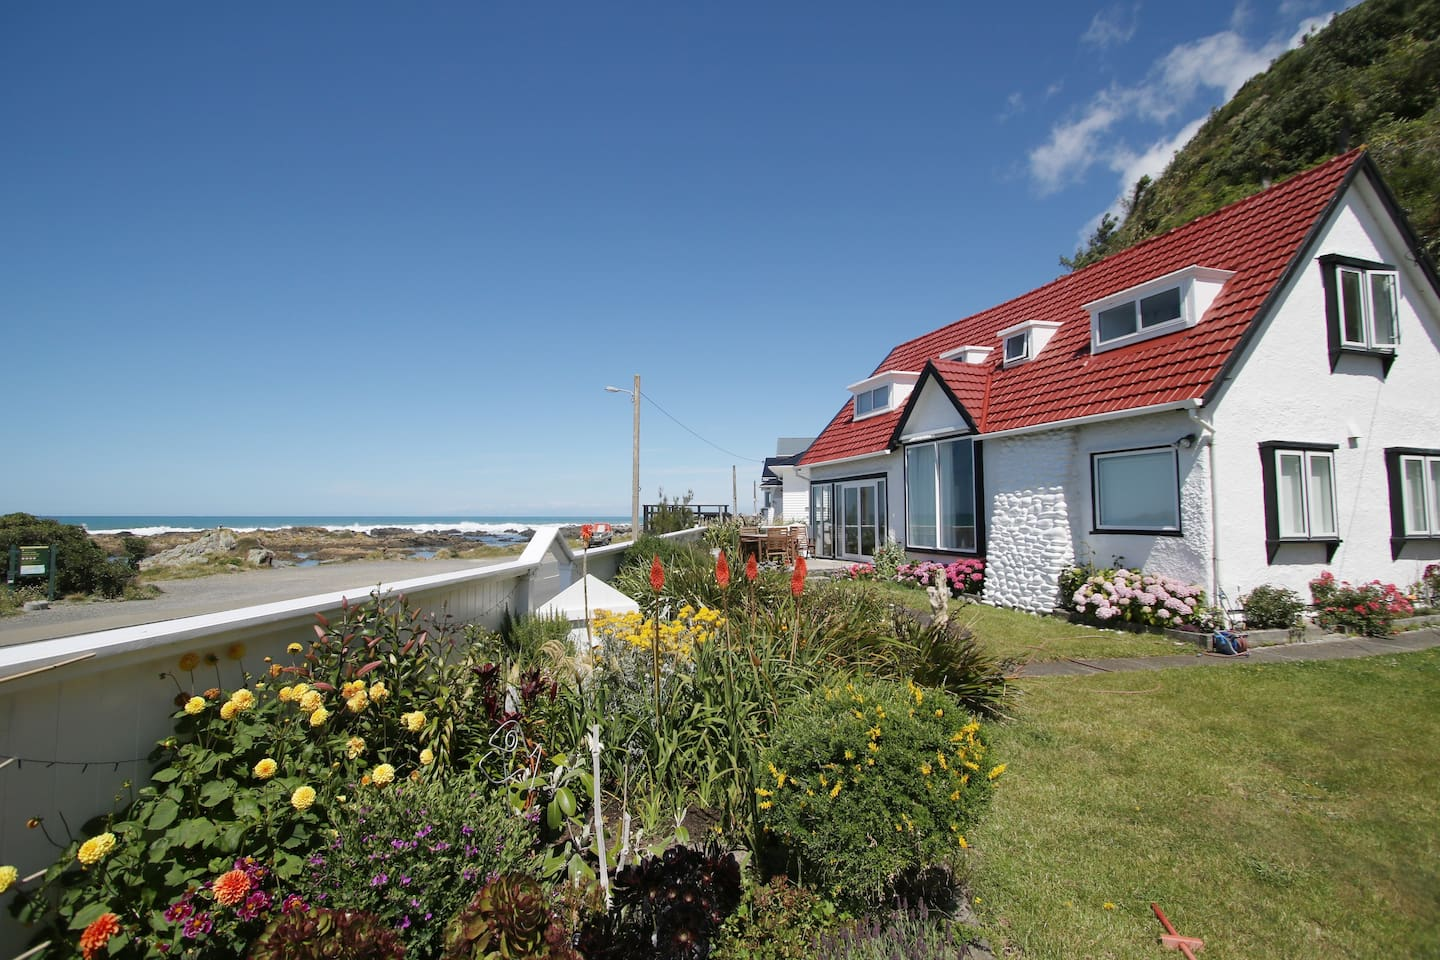 At the seaside with a blooming summer garden